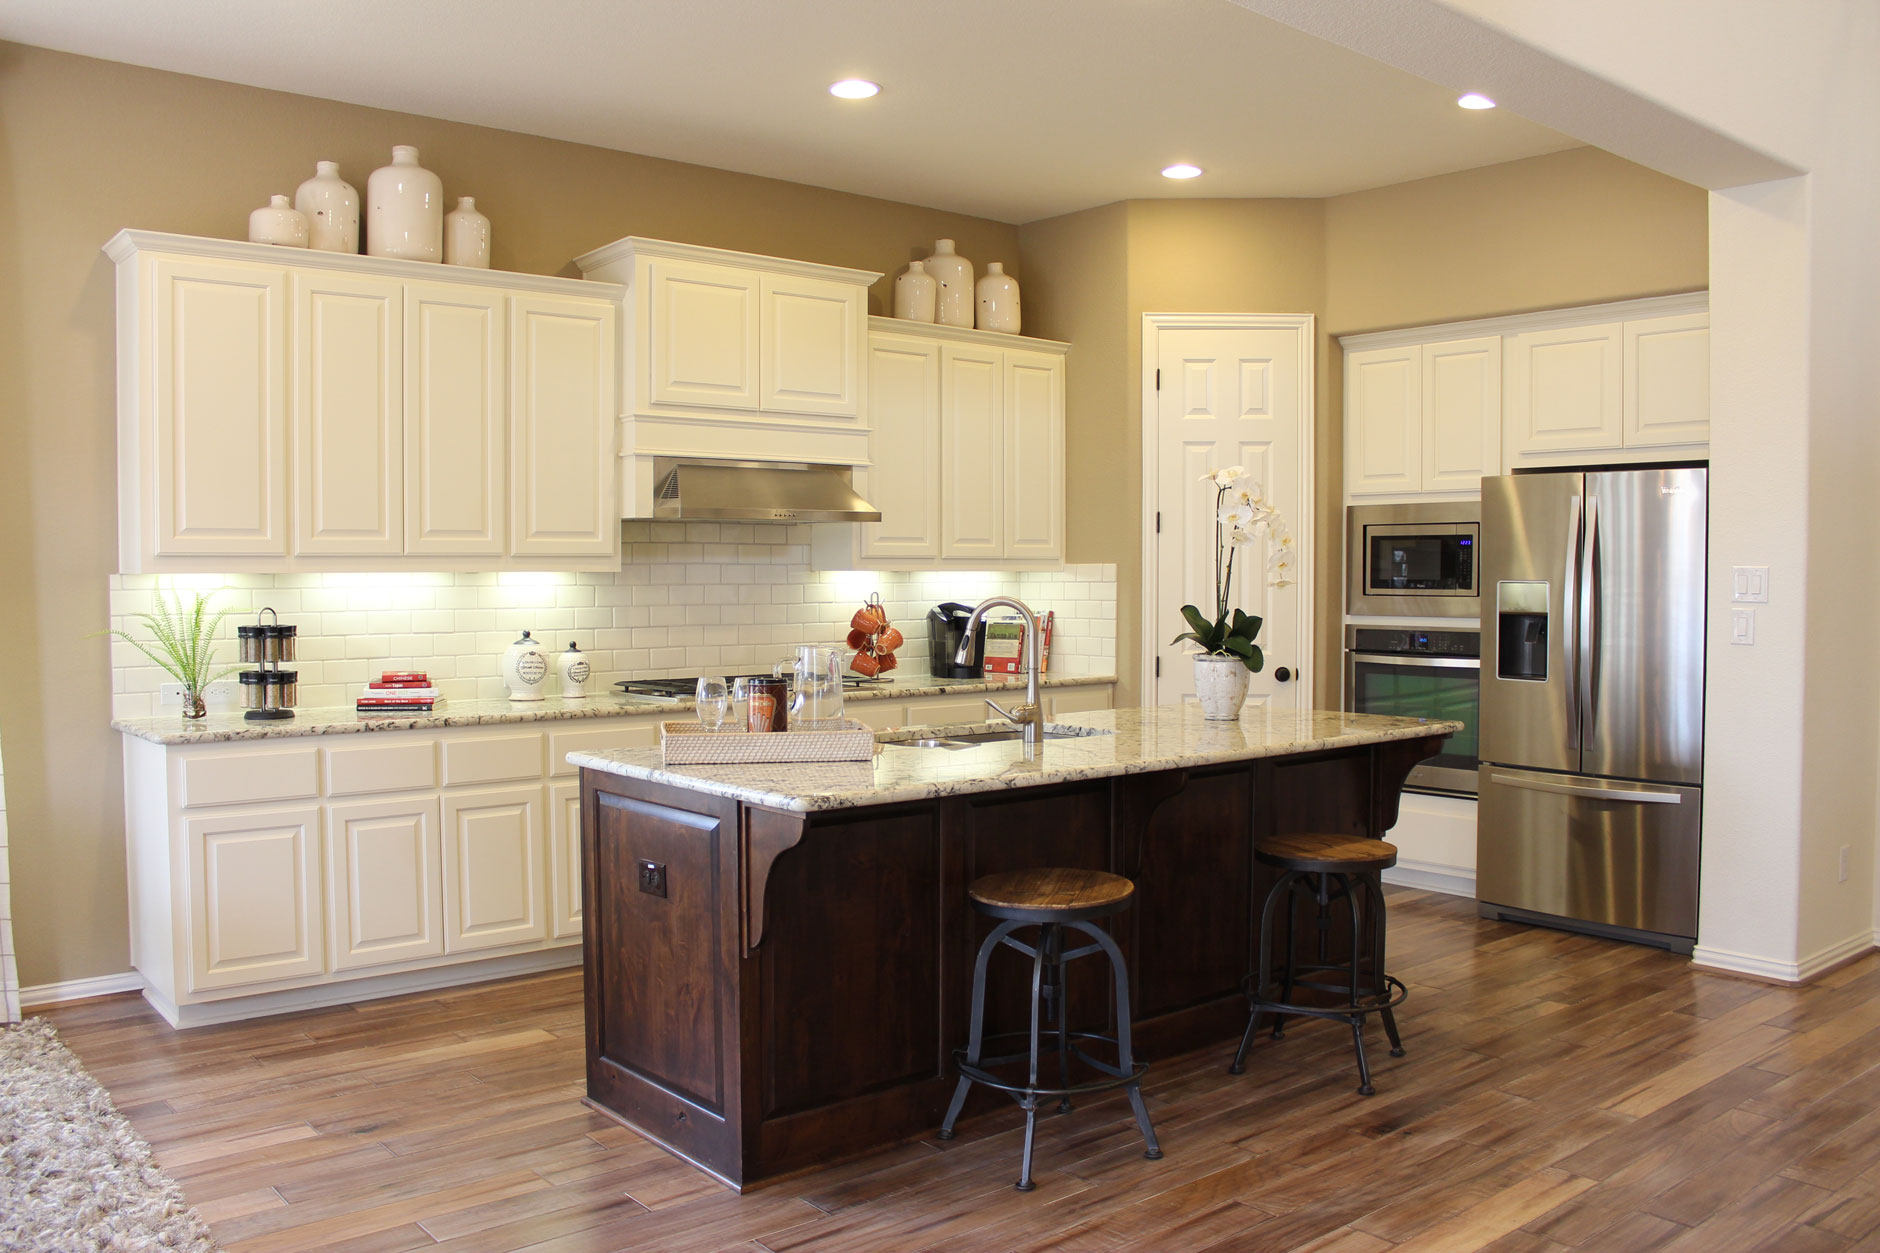 Kitchen Cabinet End Panel Ideas - Kitchen painted white with cabinet doors by taylorcraft cabinet door company